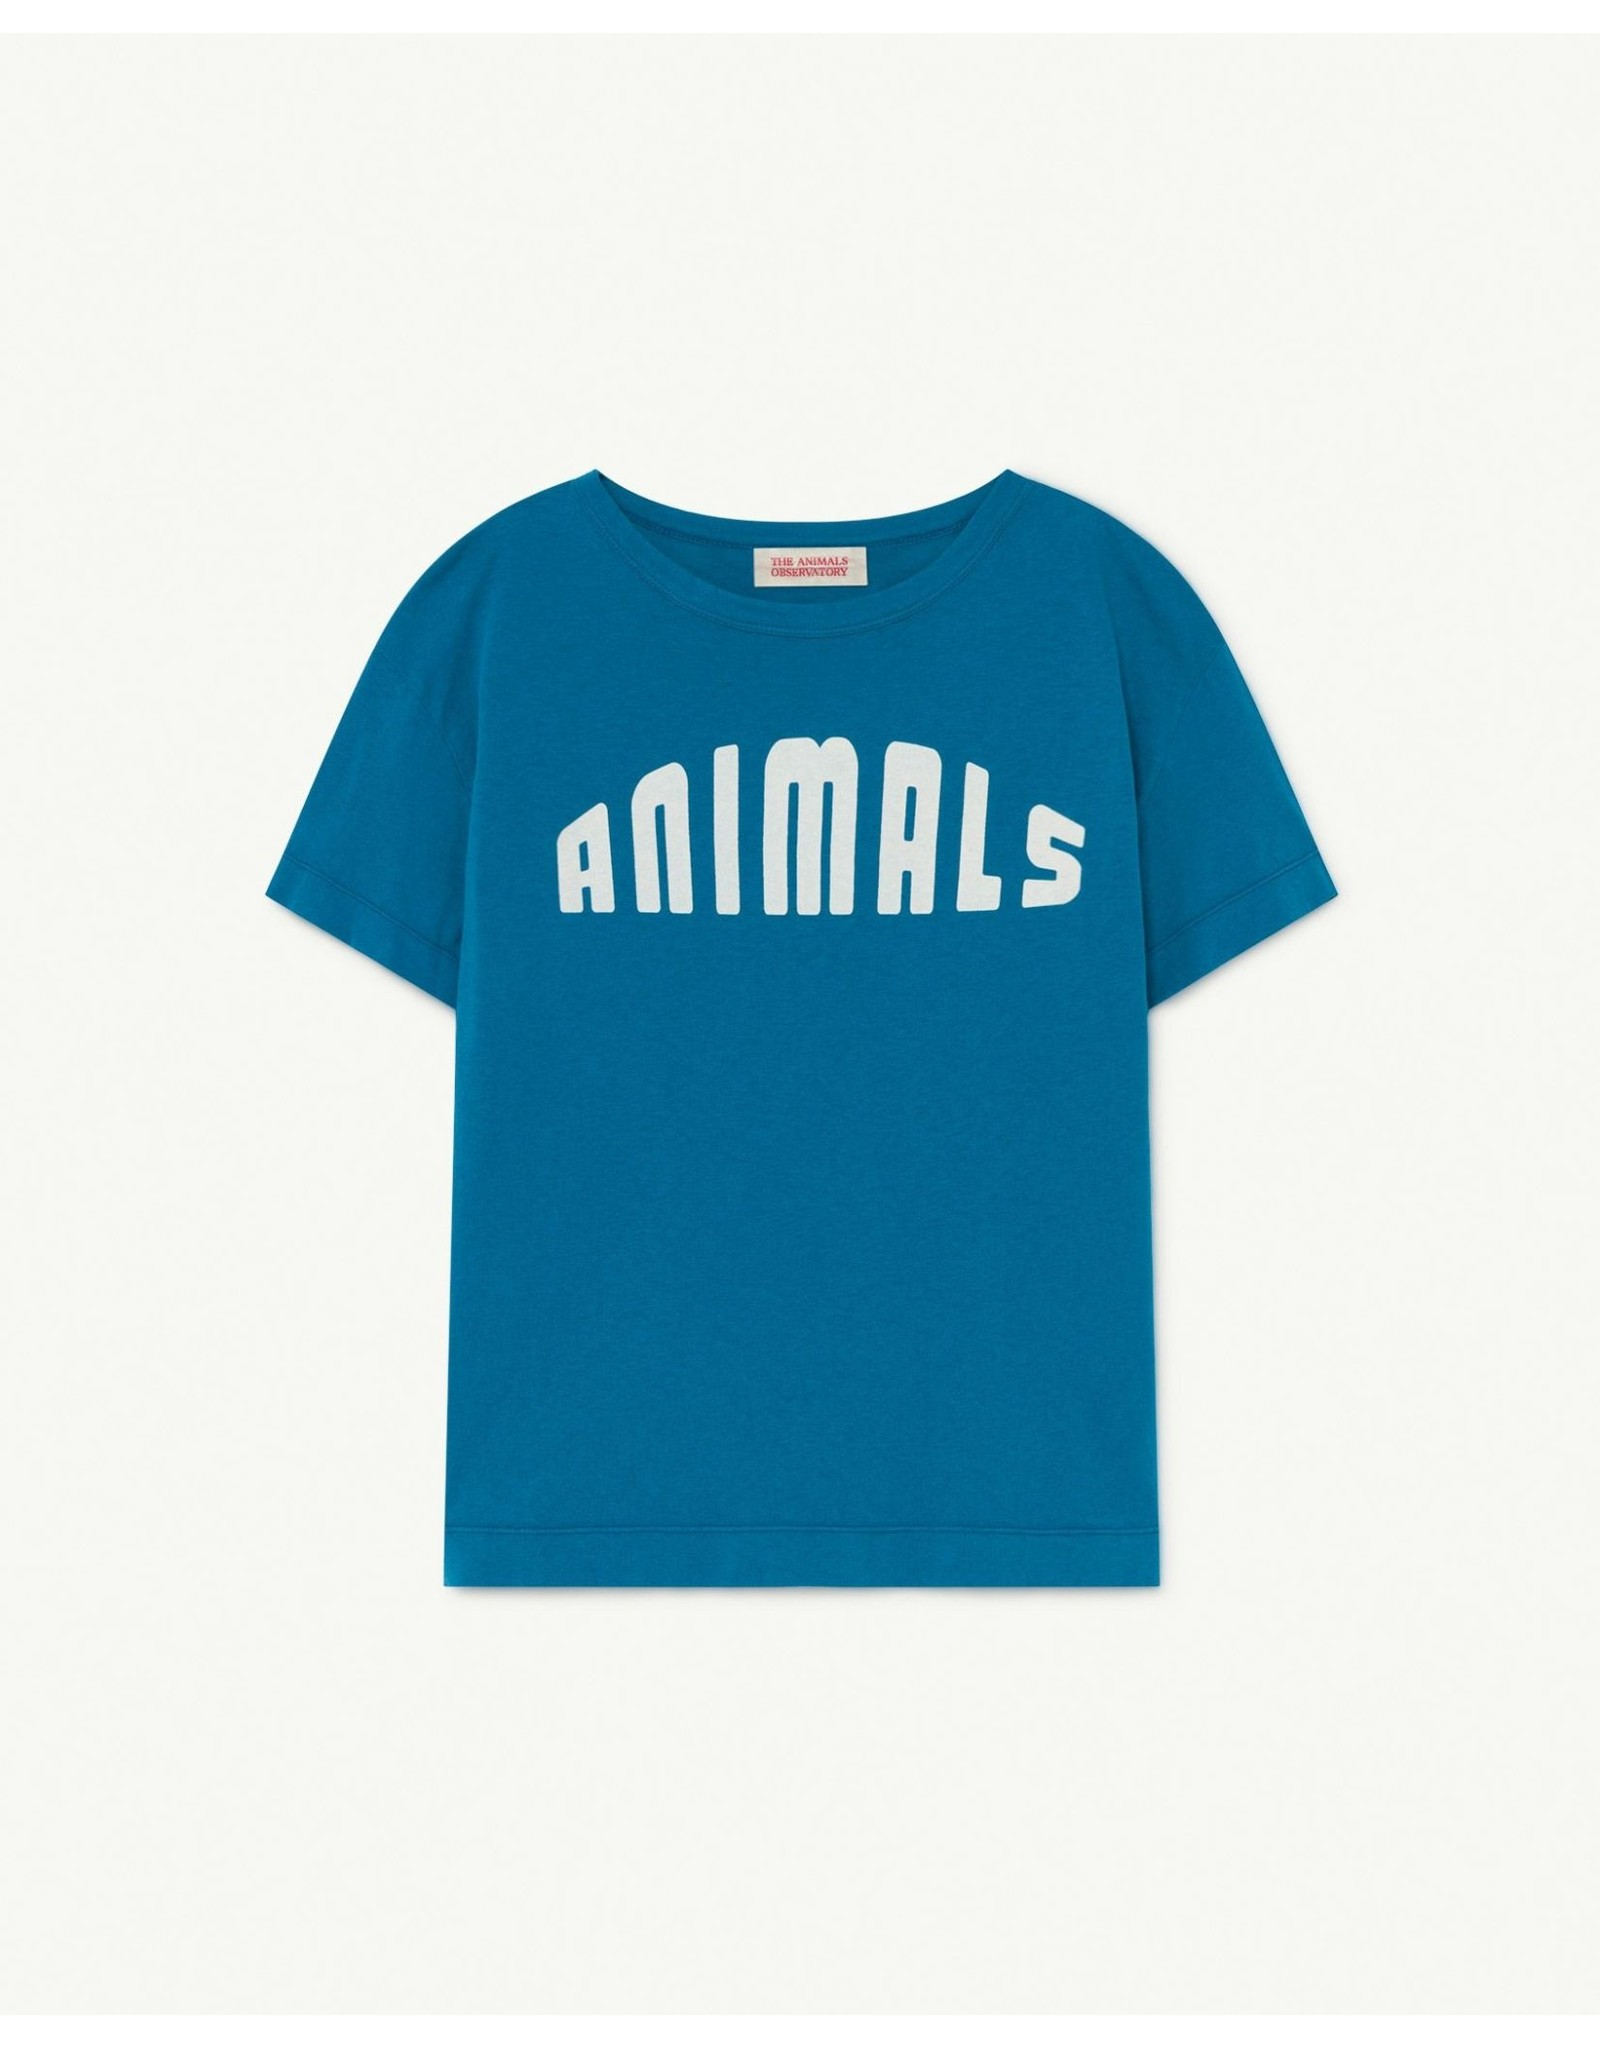 The Animals Observatory The Animals Observatory FW21 Rooster kids+ t-shirt